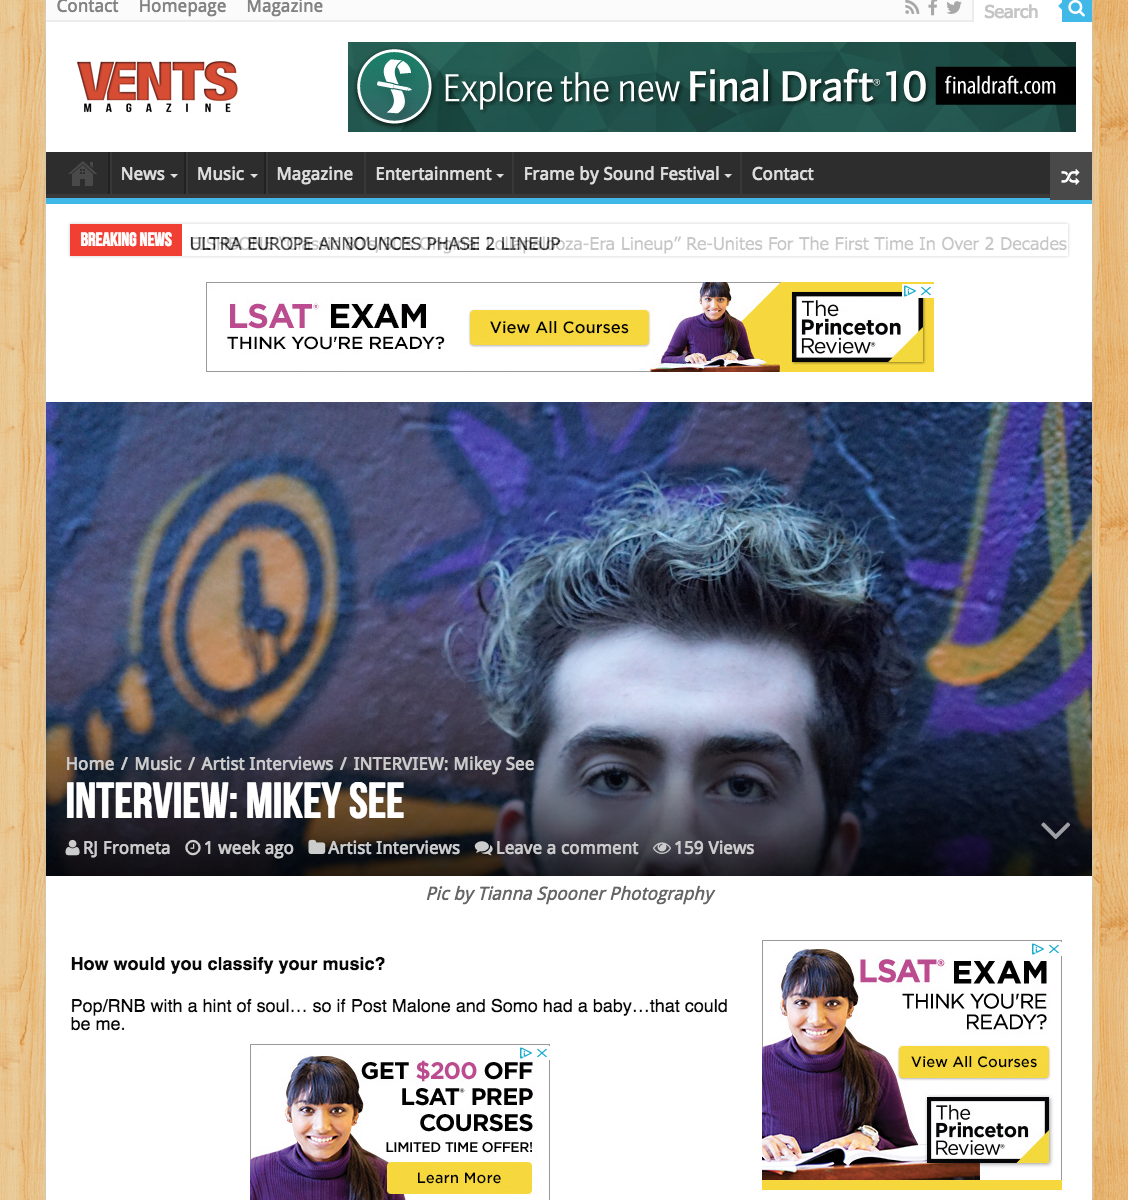 Vents Magazine - Click to see more!